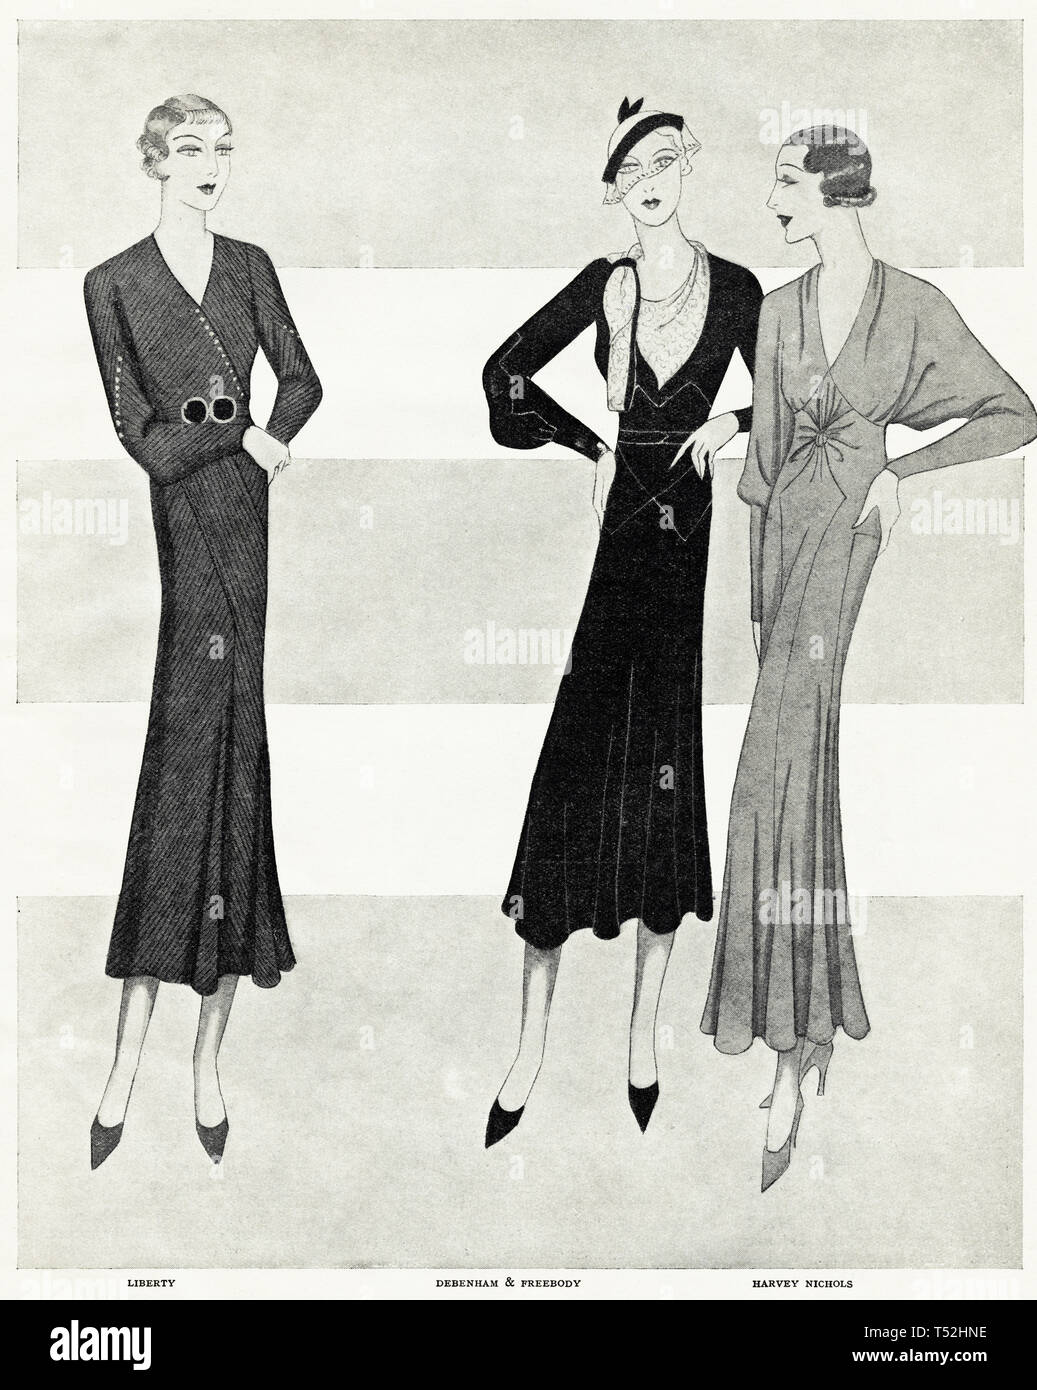 Original 1930s vintage old print illustration advertisement from 30s English magazine advertising Debenham & Freebody + Liberty + Harvey Nichols womens fashion circa 1932 - Stock Image